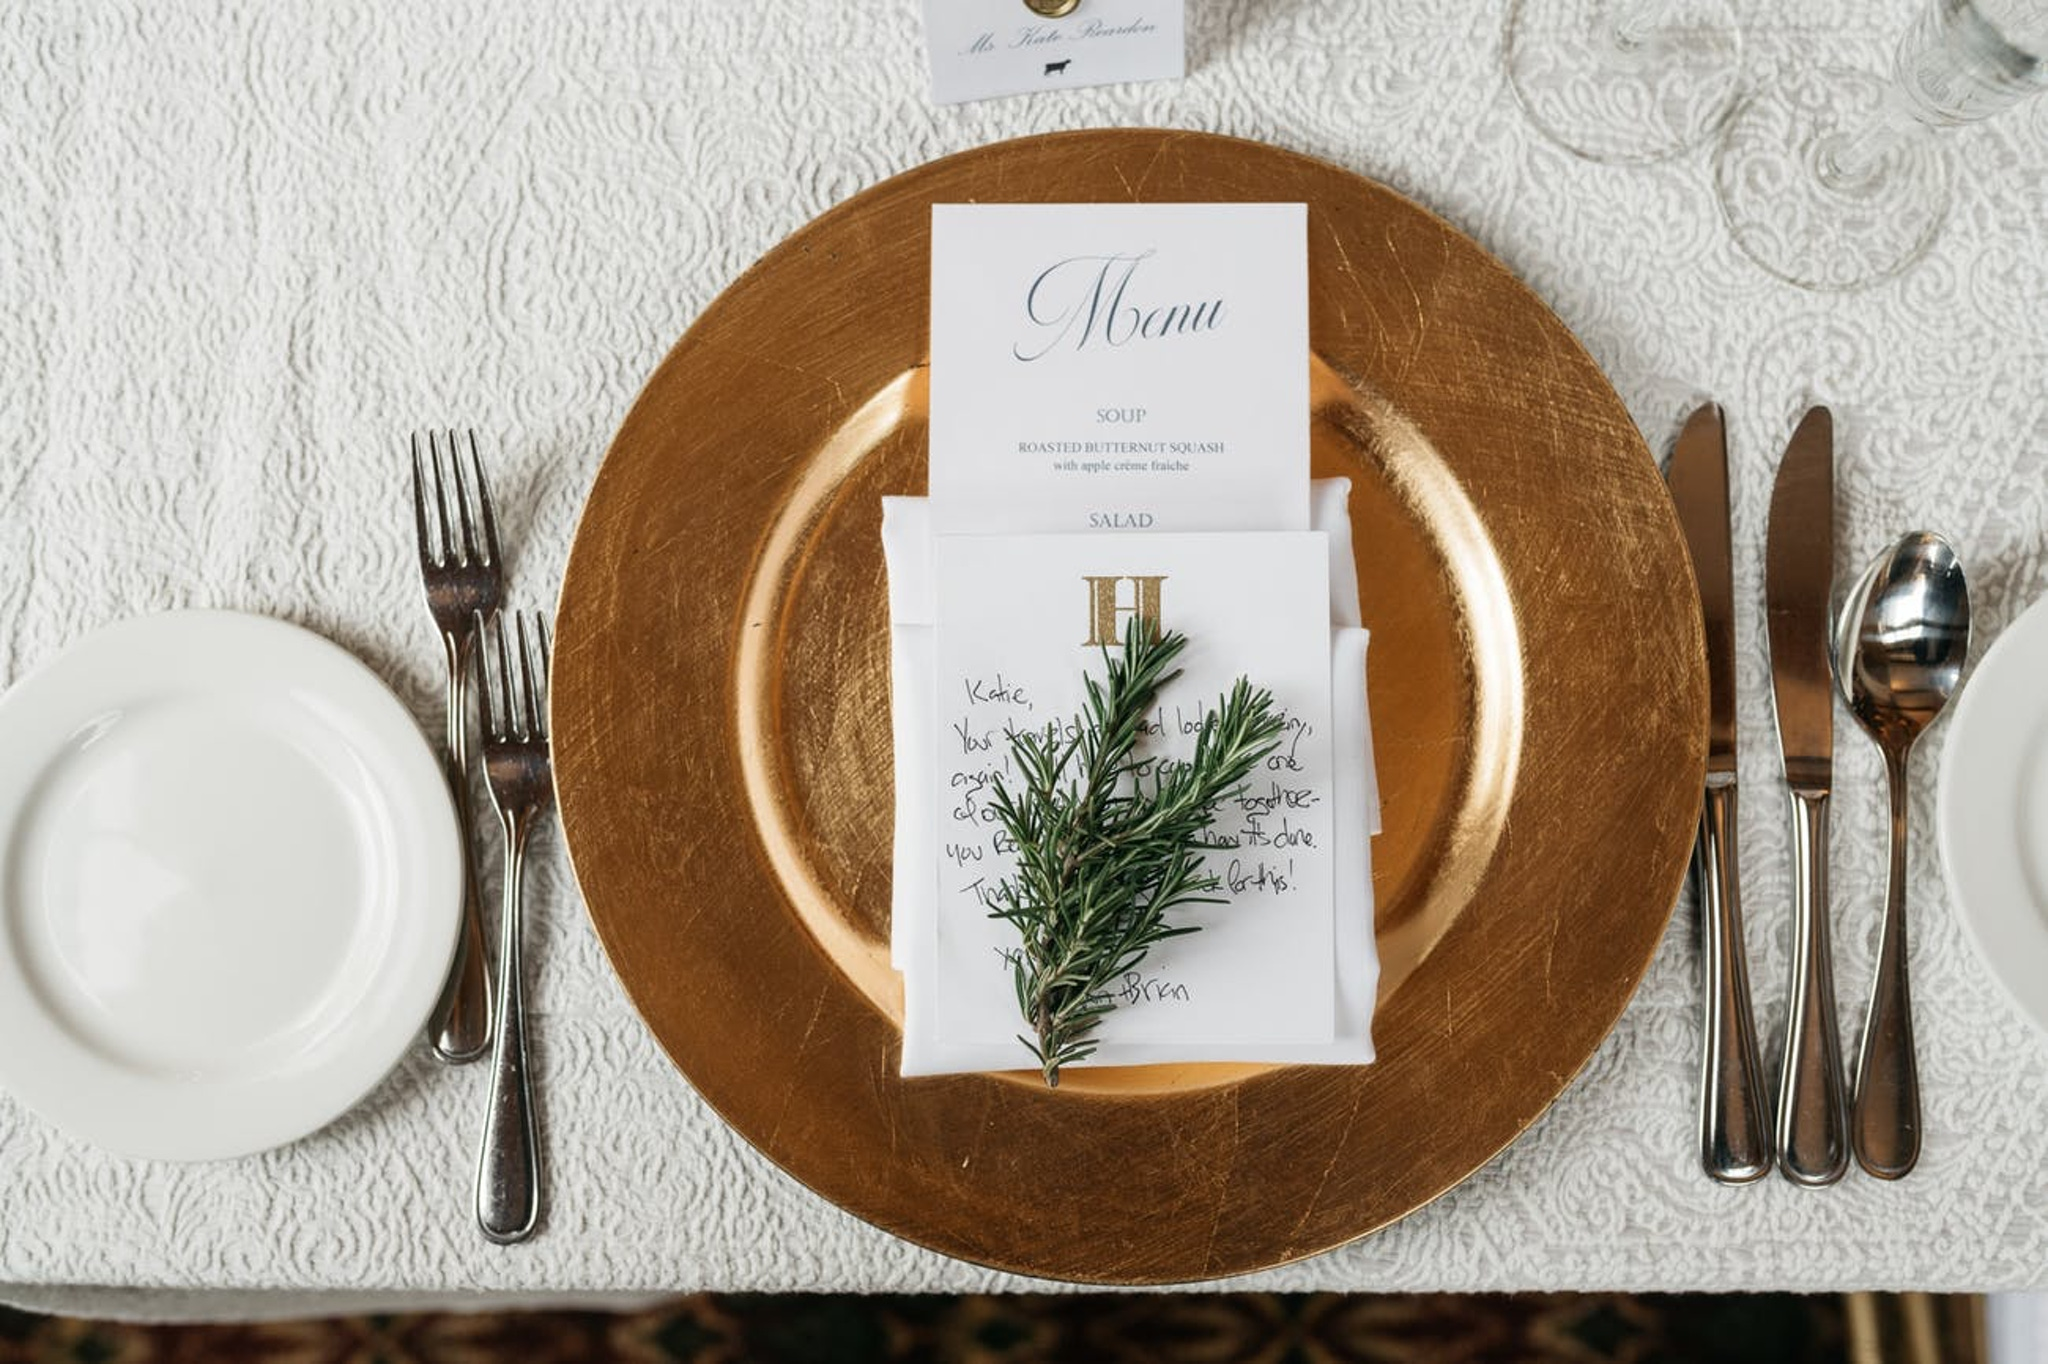 Montage Deer Valley Wedding reception place settings with greenery and white menu and white linens